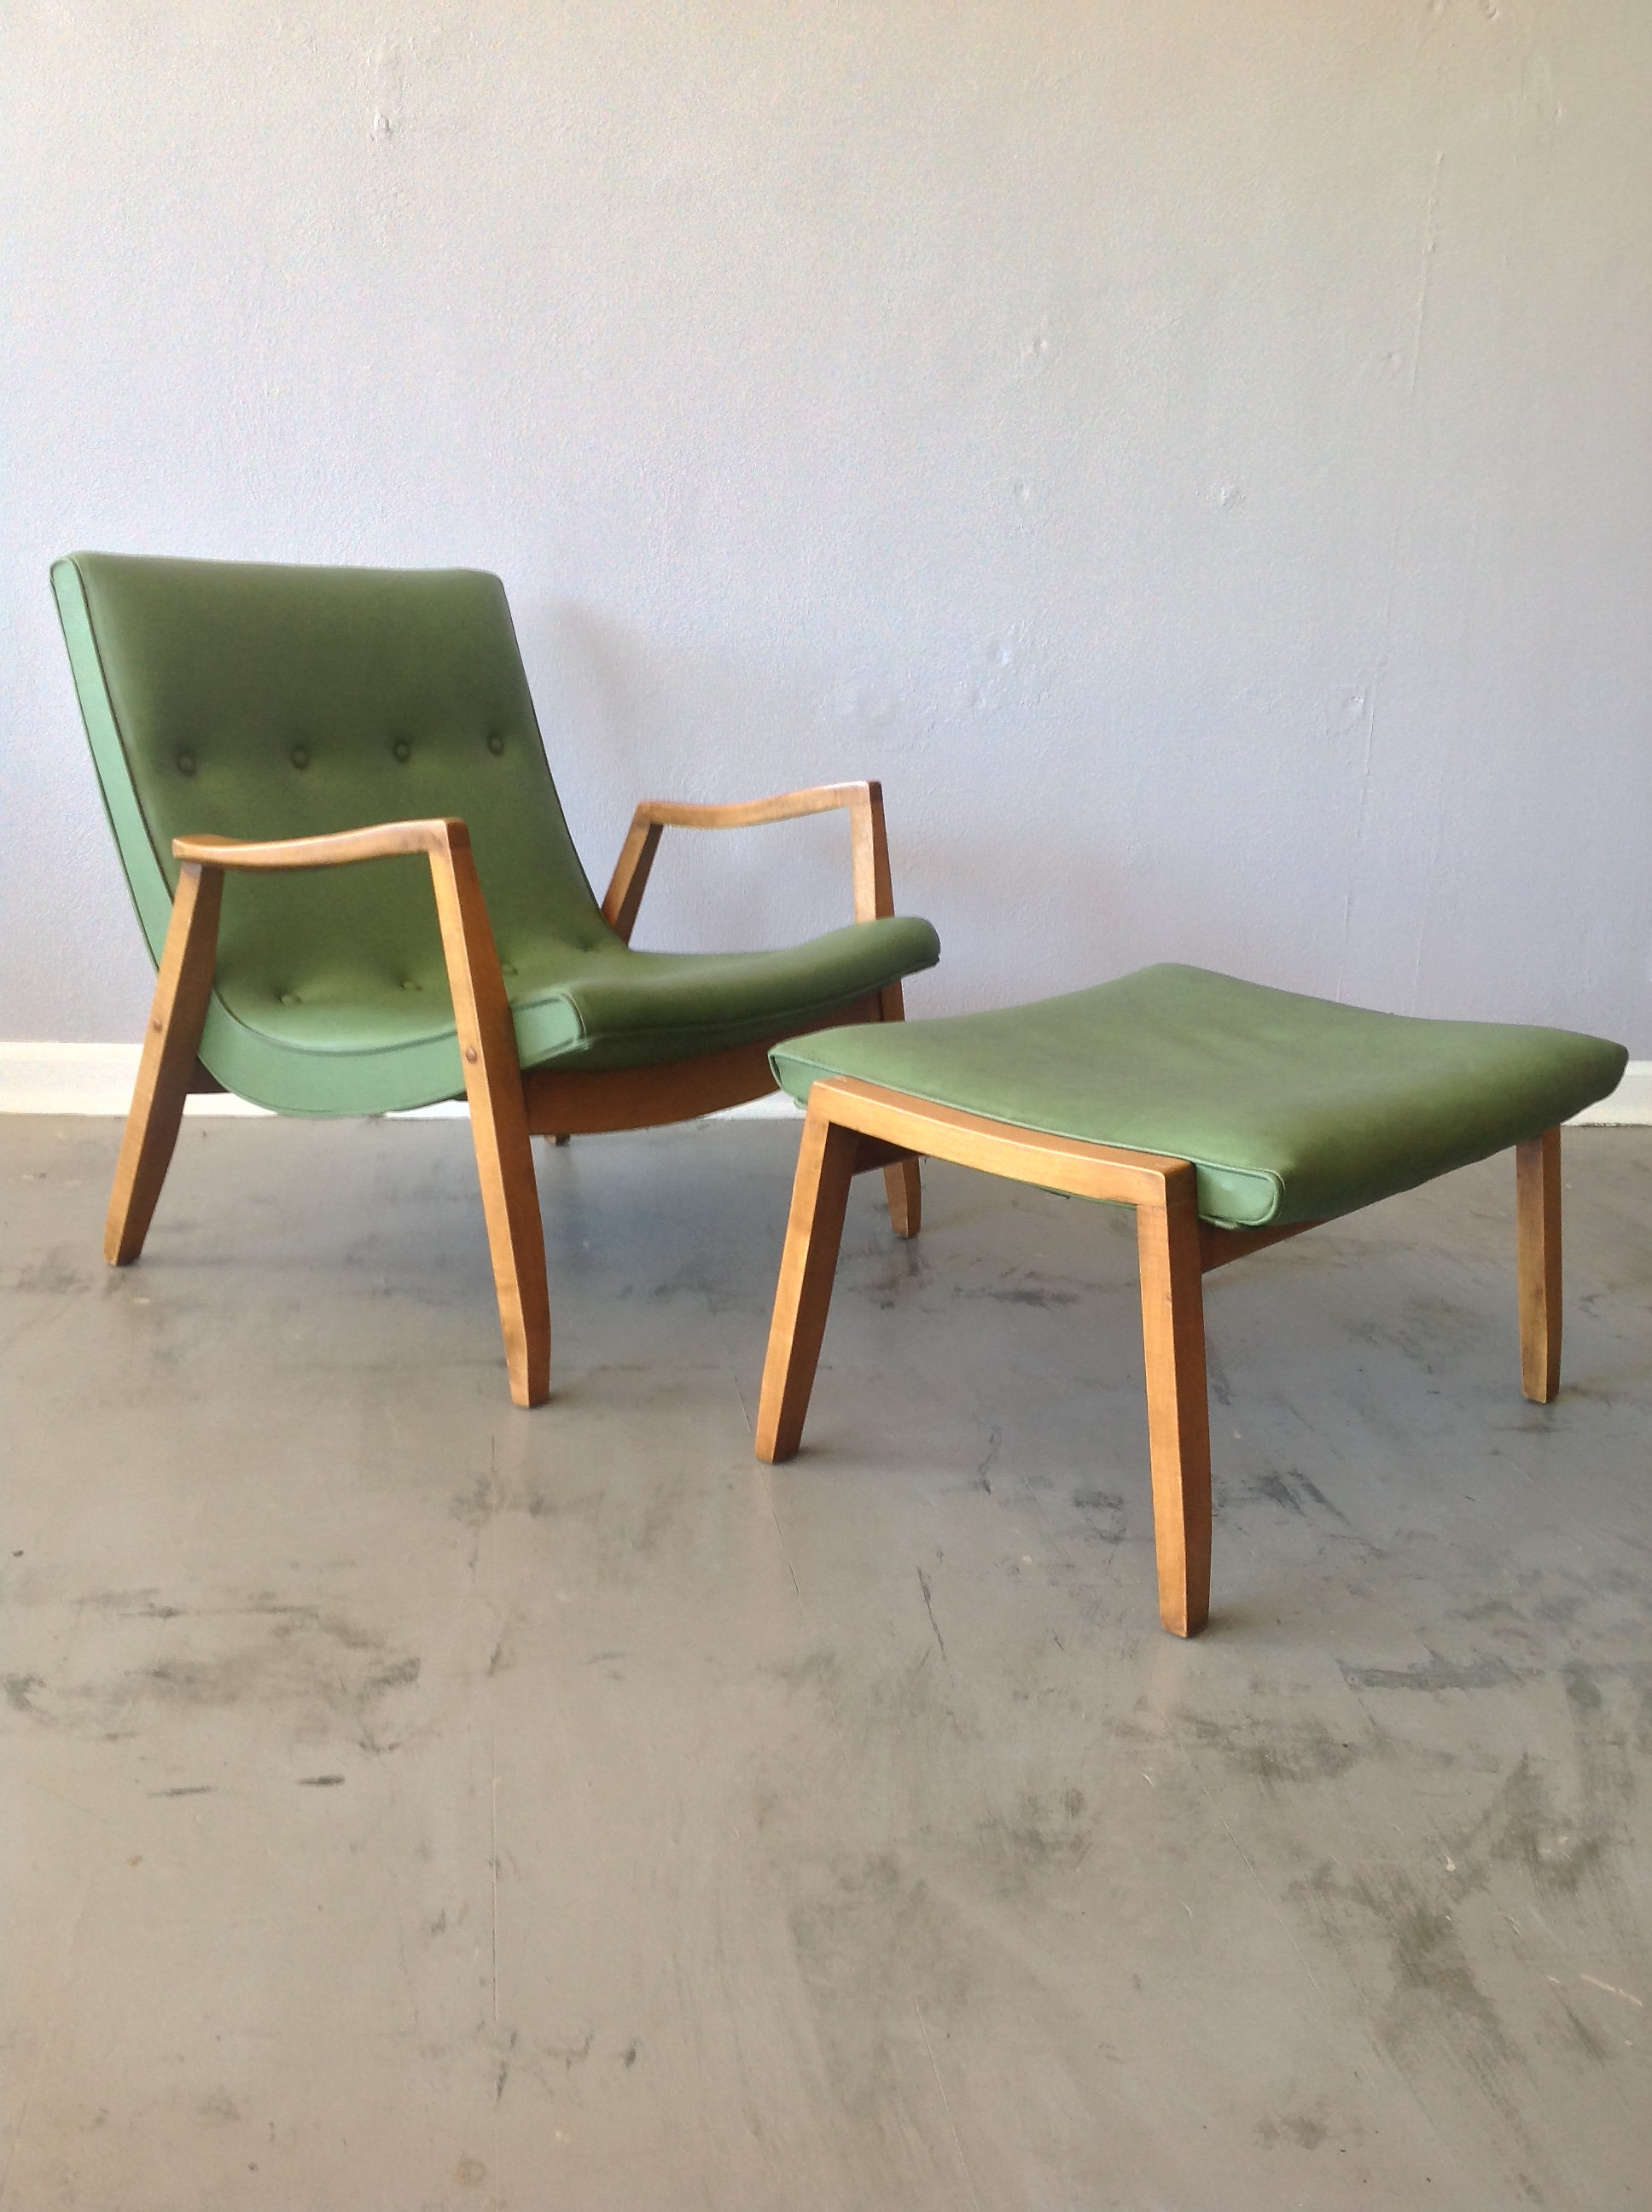 This Low And Loungey Milo Baughman Scoop Chair And Matching Ottoman Retain  Their Original Upholstery And Are In Good Condition.